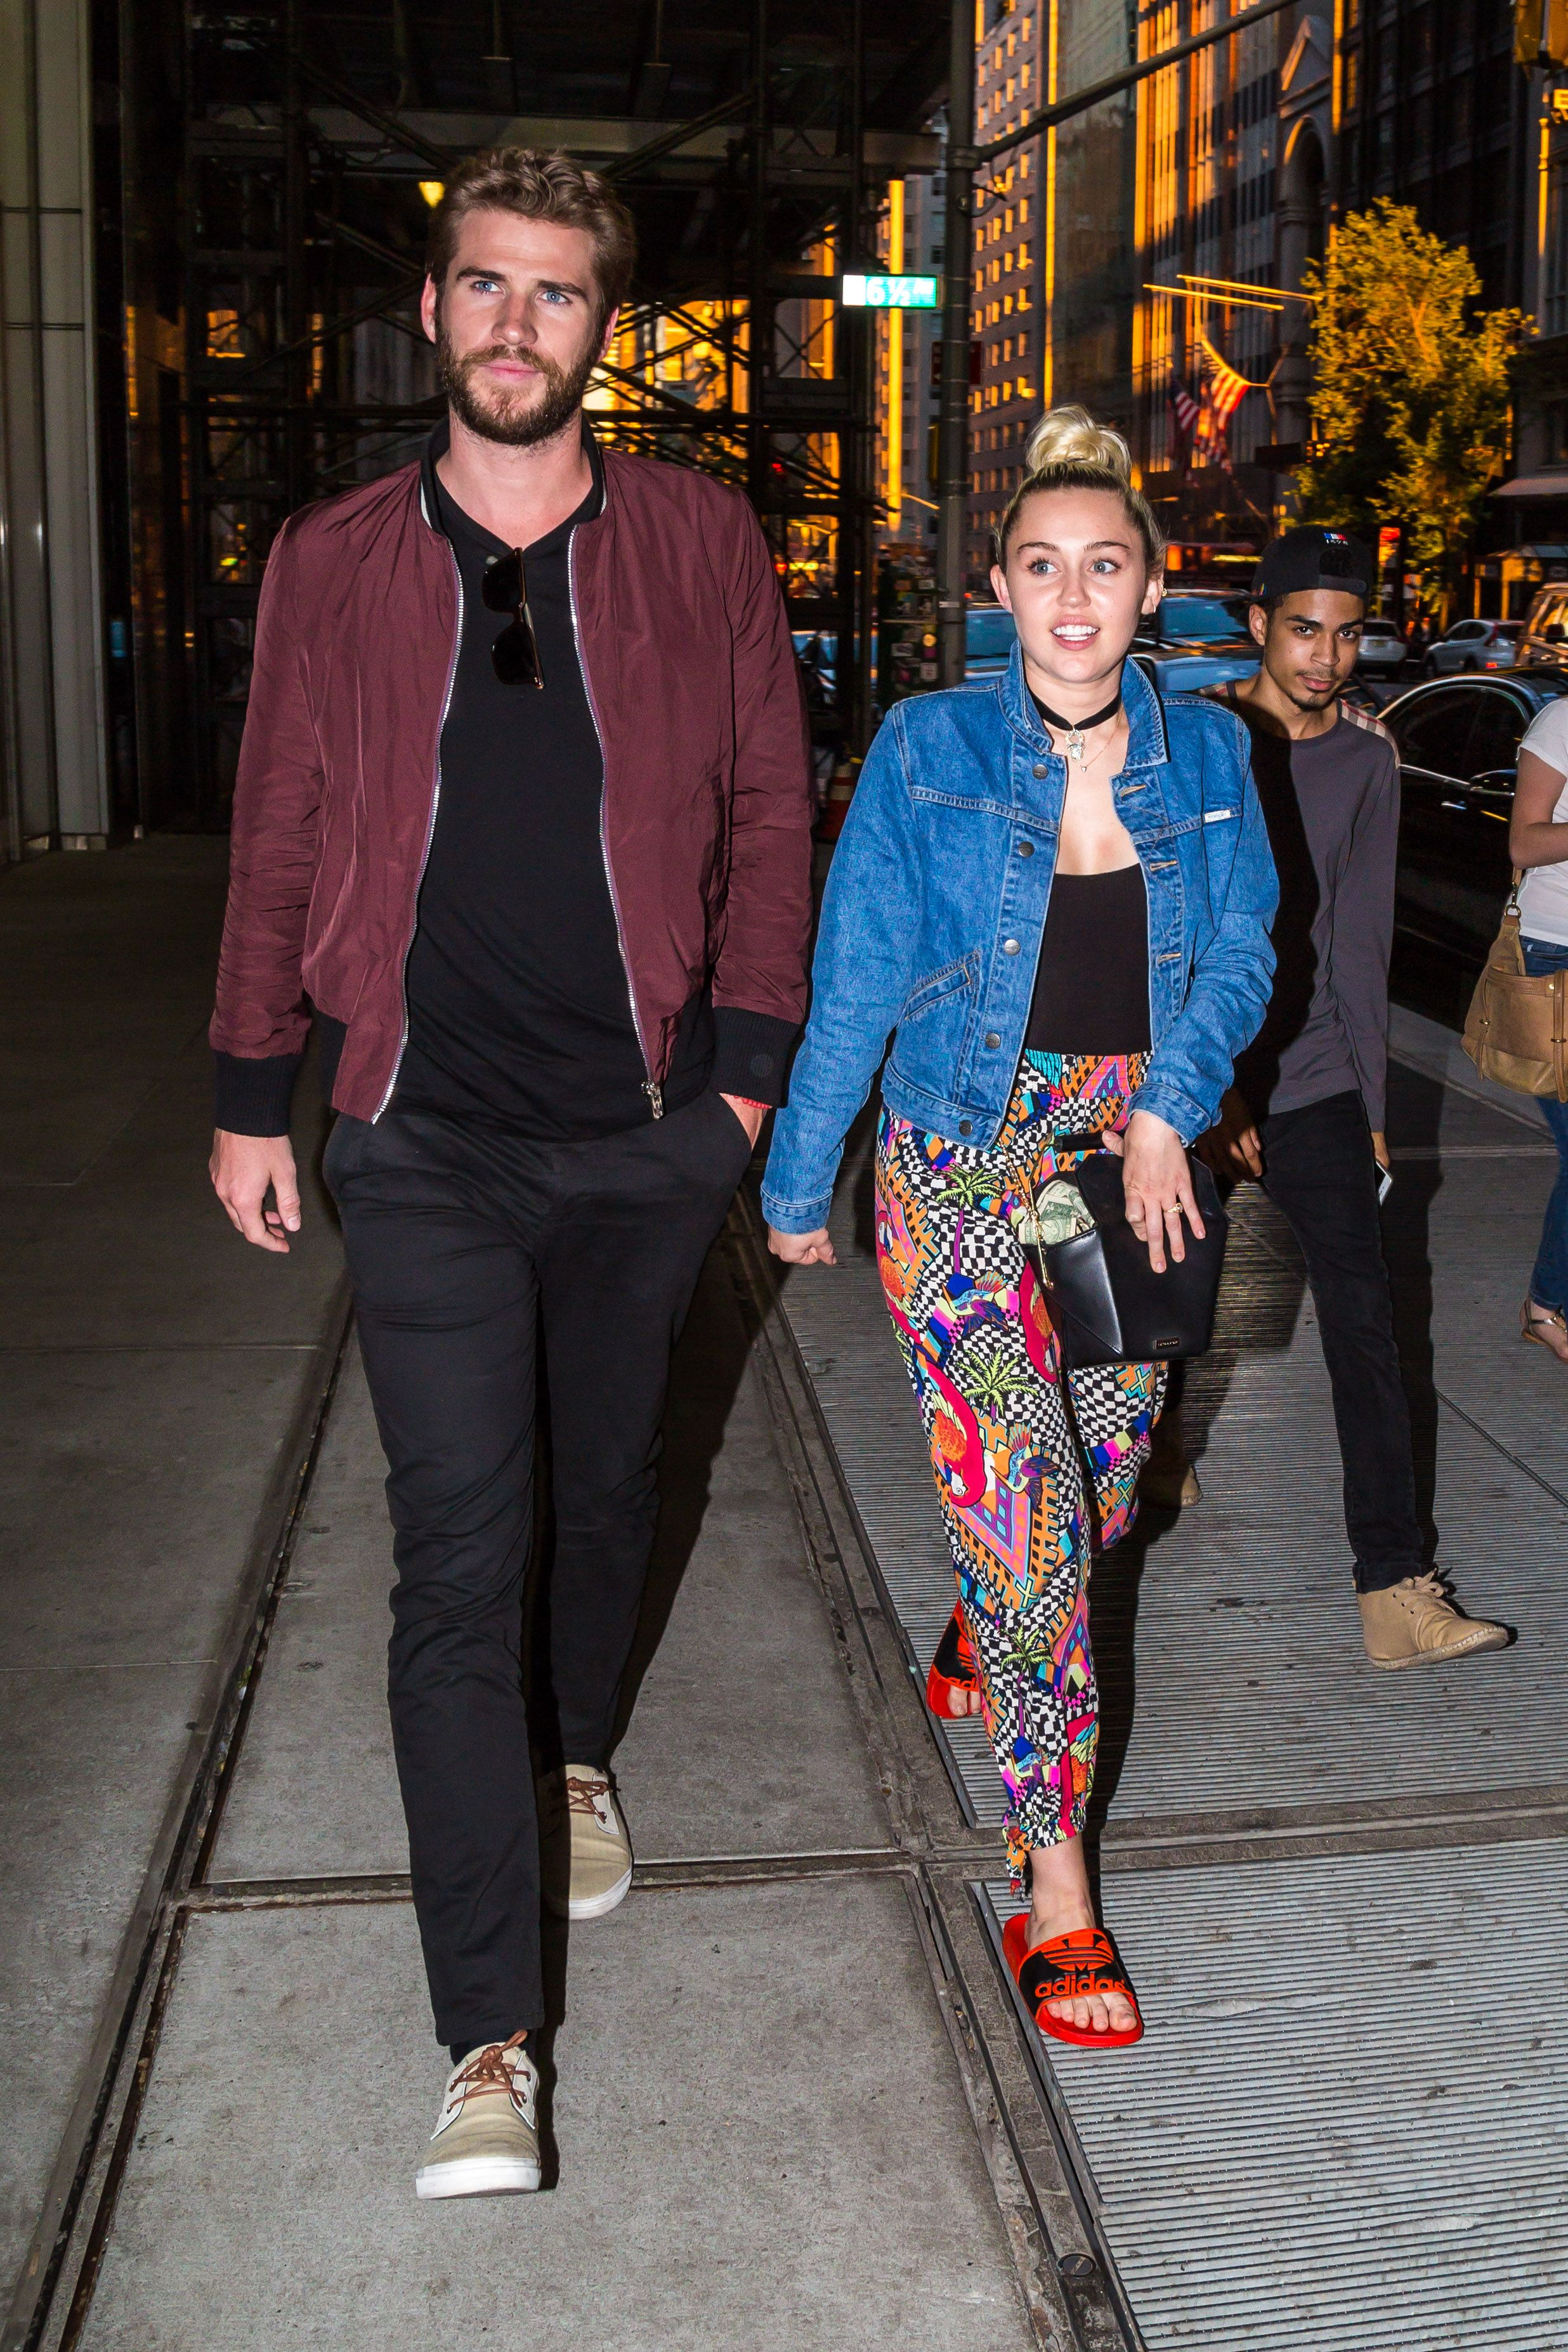 Miley Cyrus and Liam Hemsworth Have the Best Method for Dealing with the Paparazzi